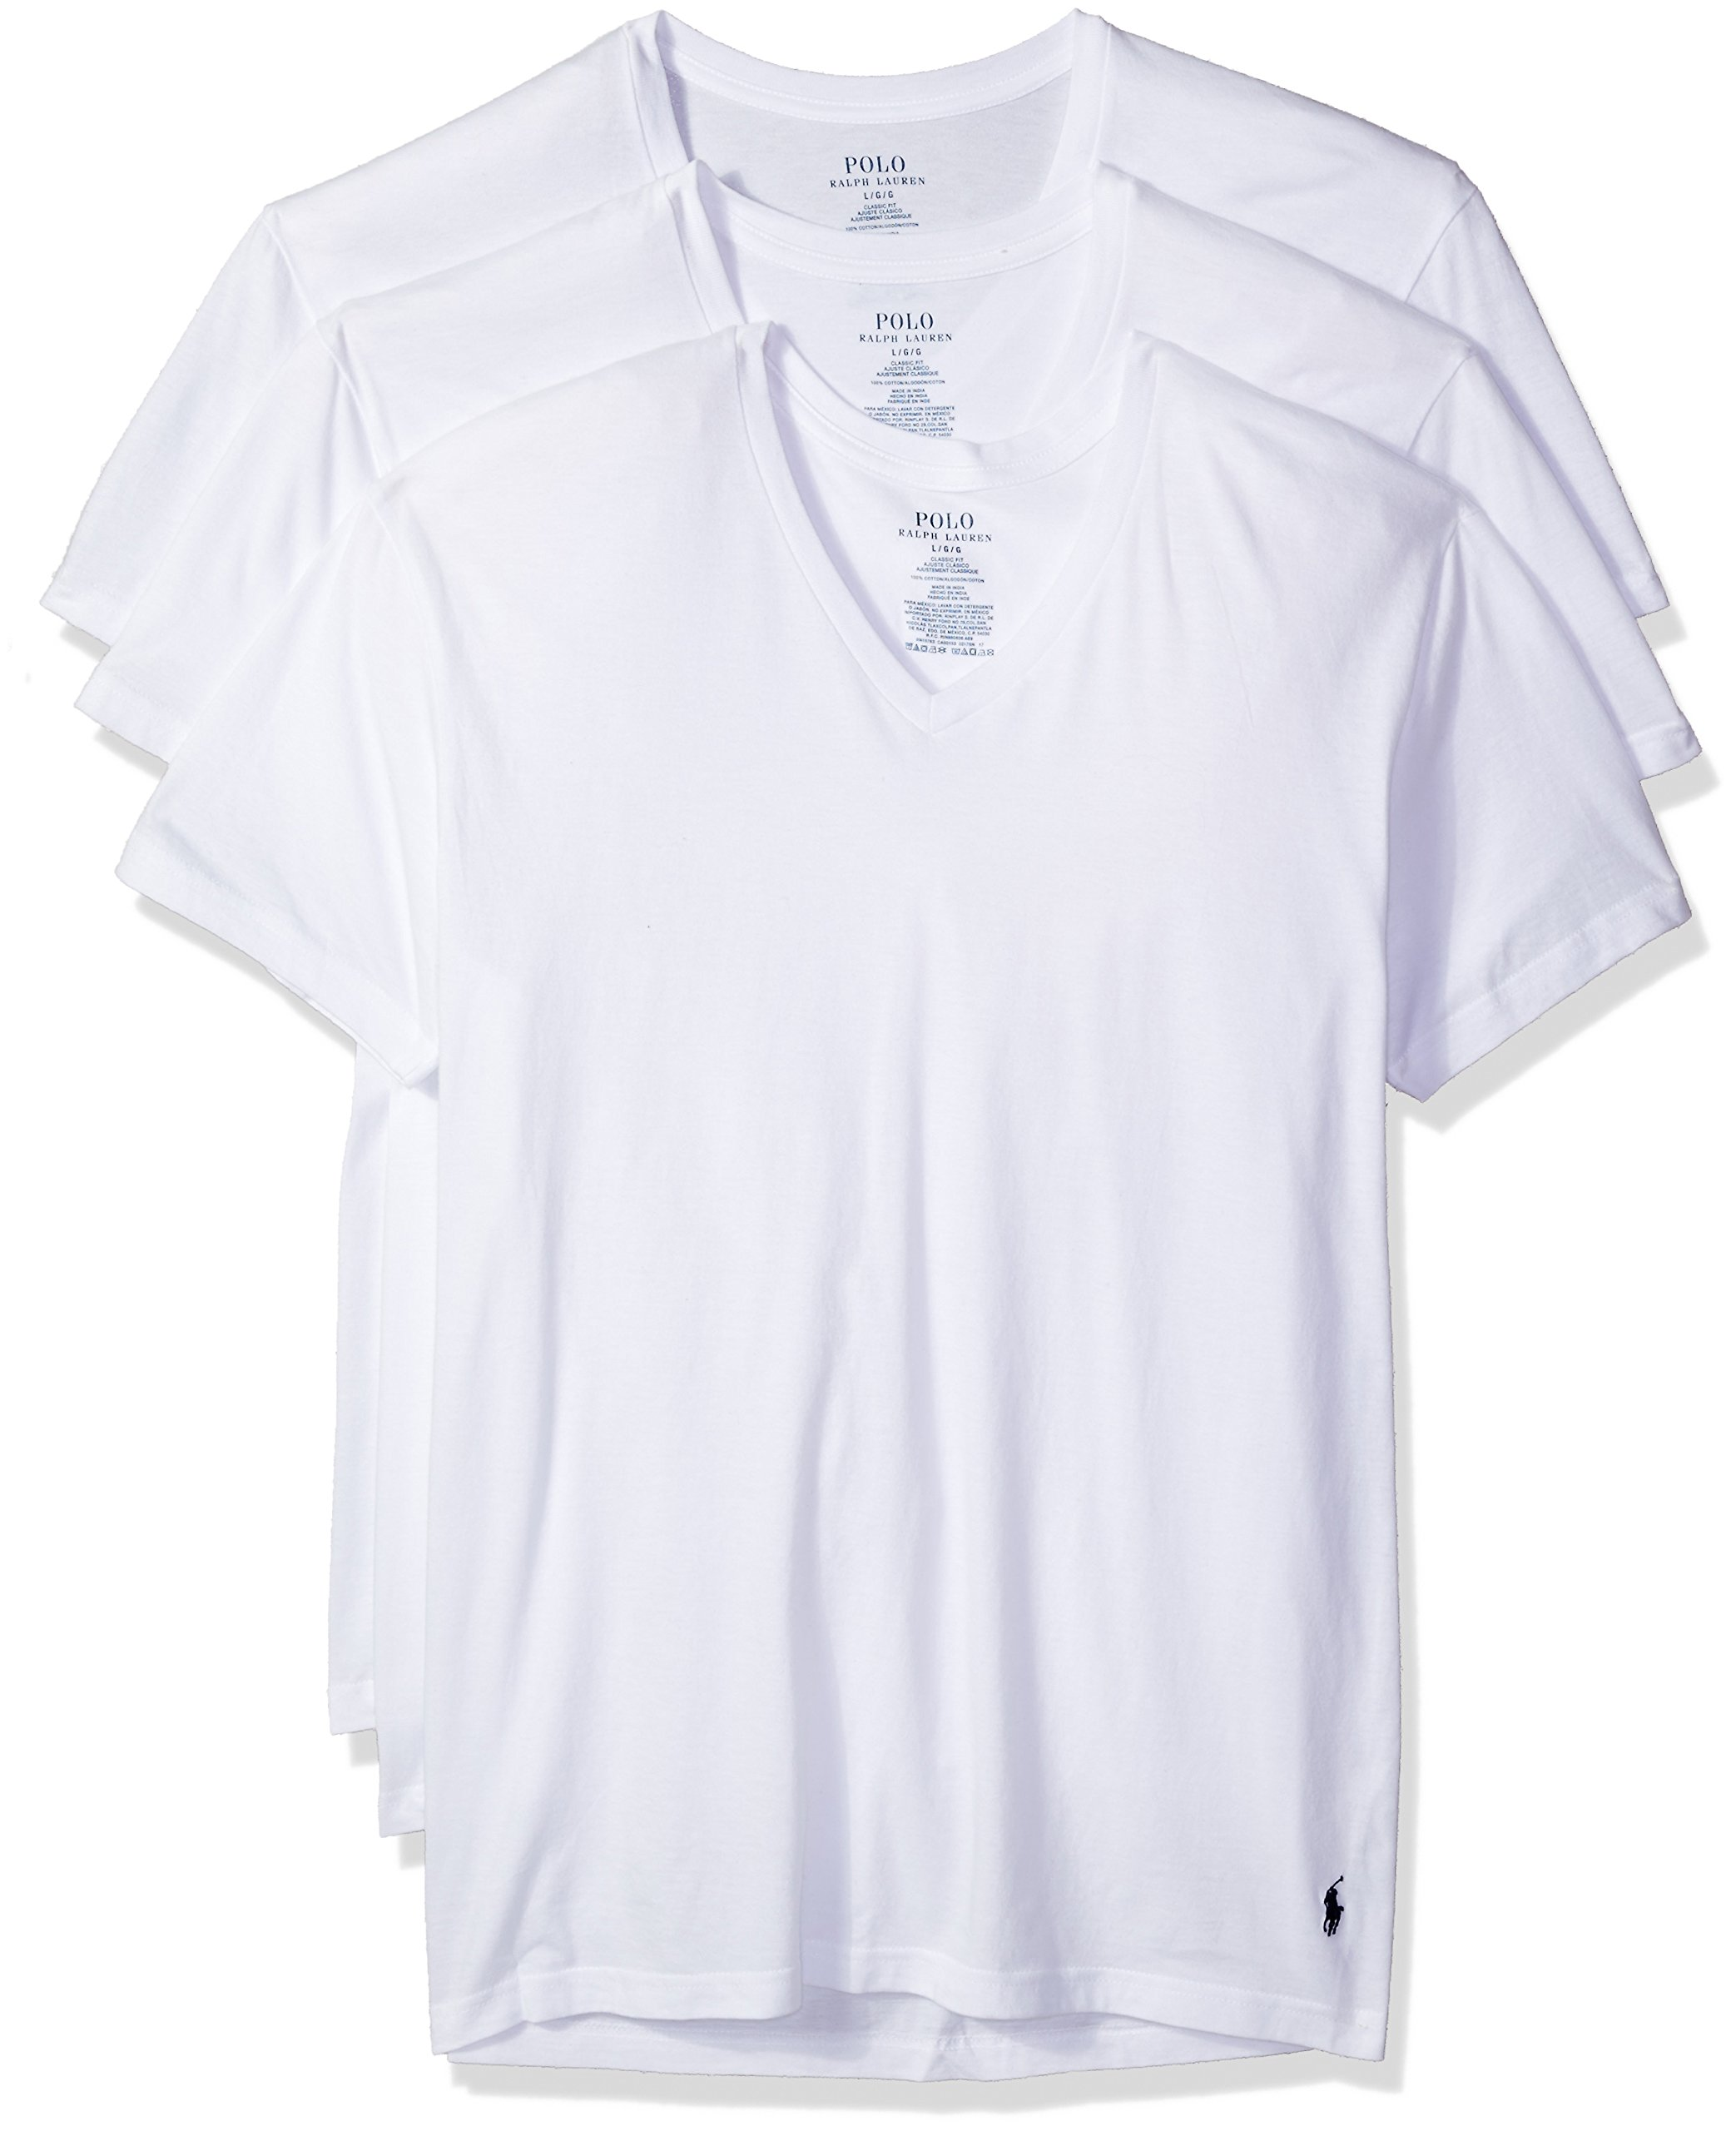 Polo Ralph Lauren Classic V-Neck T-Shirts 3-Pack, XXL, White by Polo Ralph Lauren